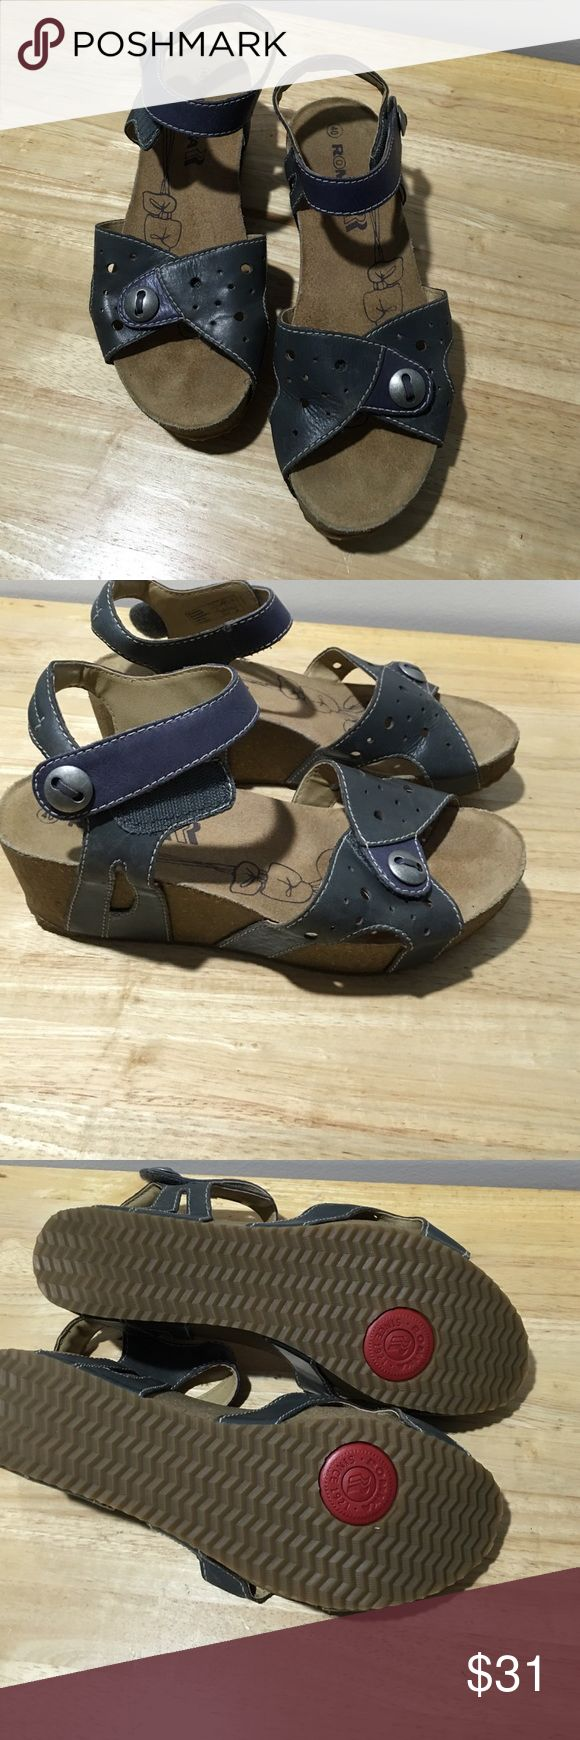 Romika Sandals Sz 40 US 10 Blue Romika Sandals Size 49. Us 10 Leather Wedge Heel Adjustable Strap. A little stained. Romika Shoes Wedges